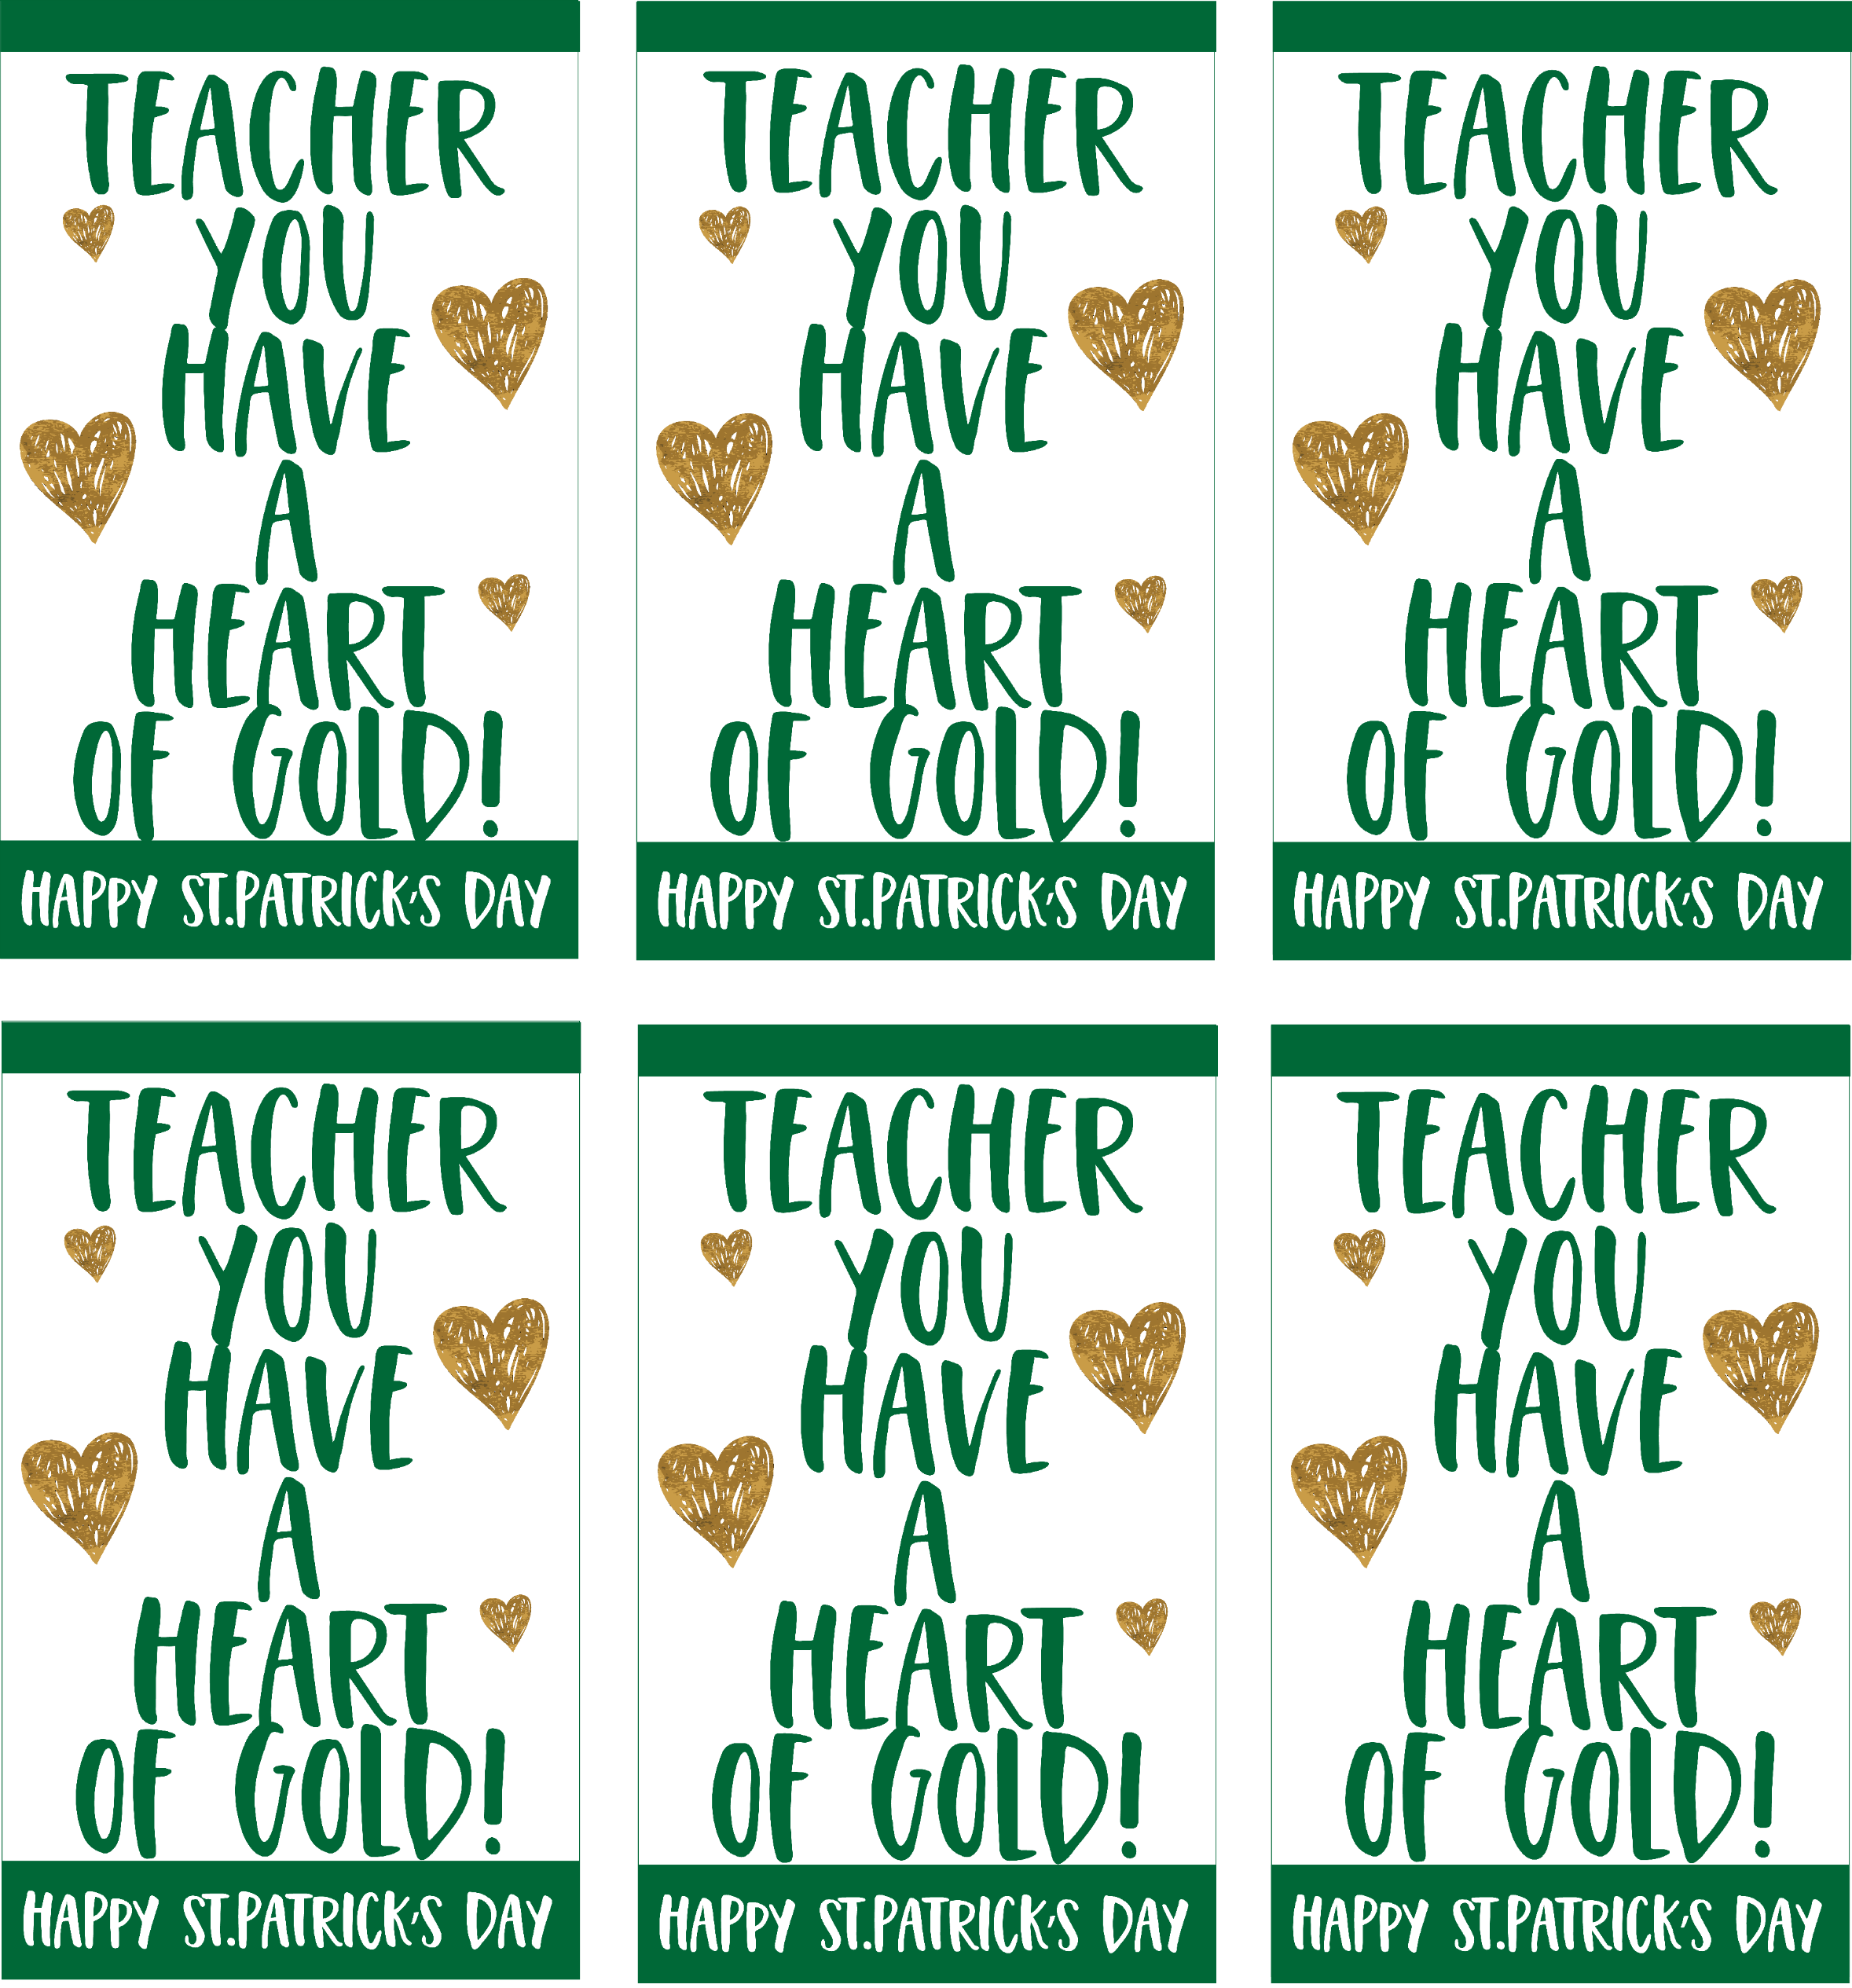 Teacher You Have a Heart of Gold Gift Tags